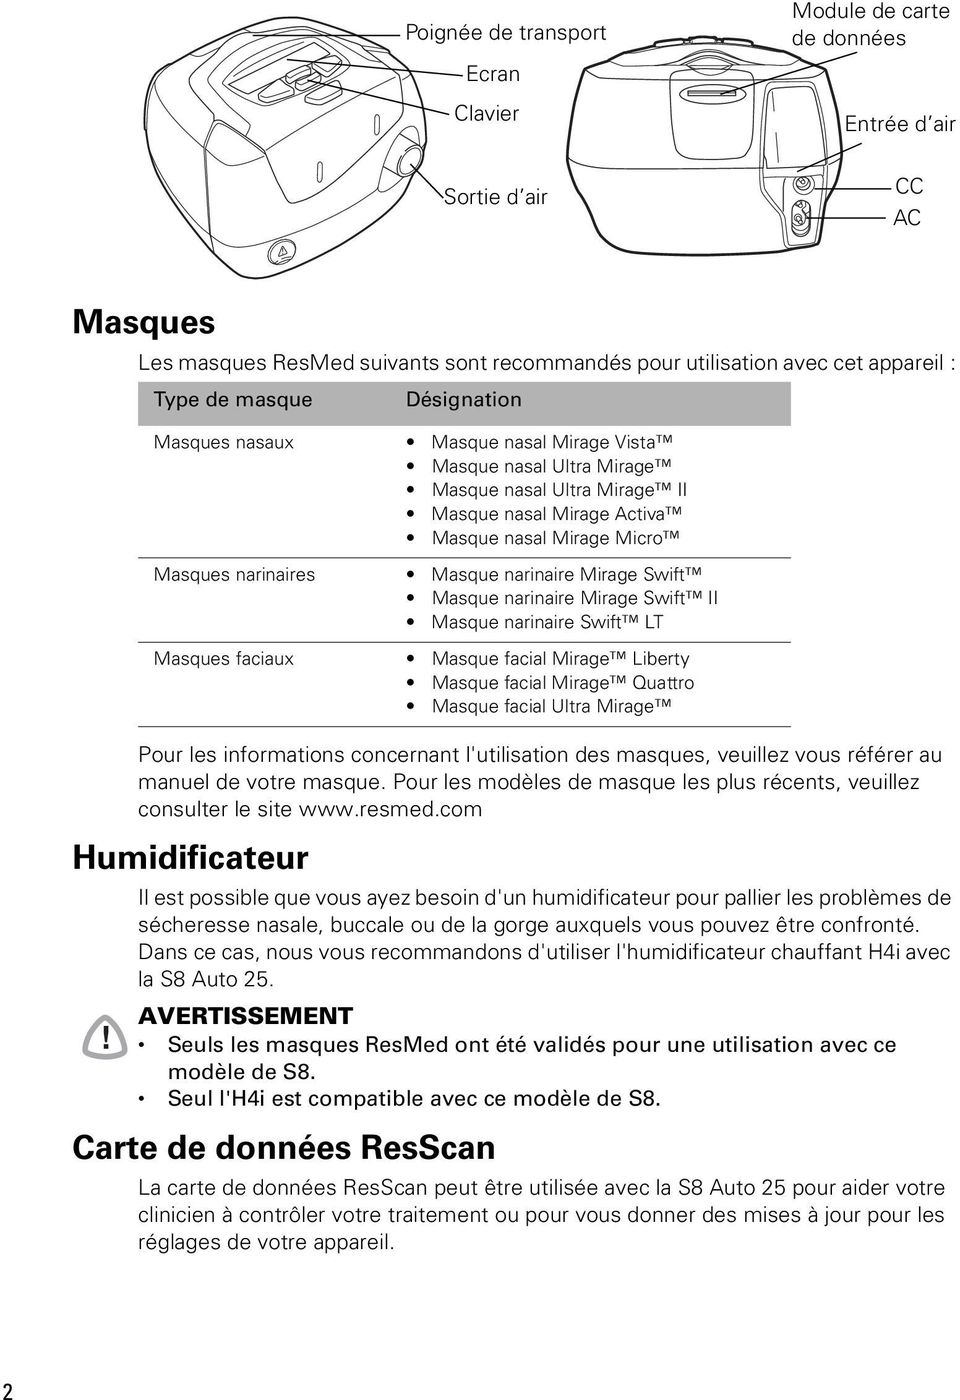 resmed.com Humidificateur!